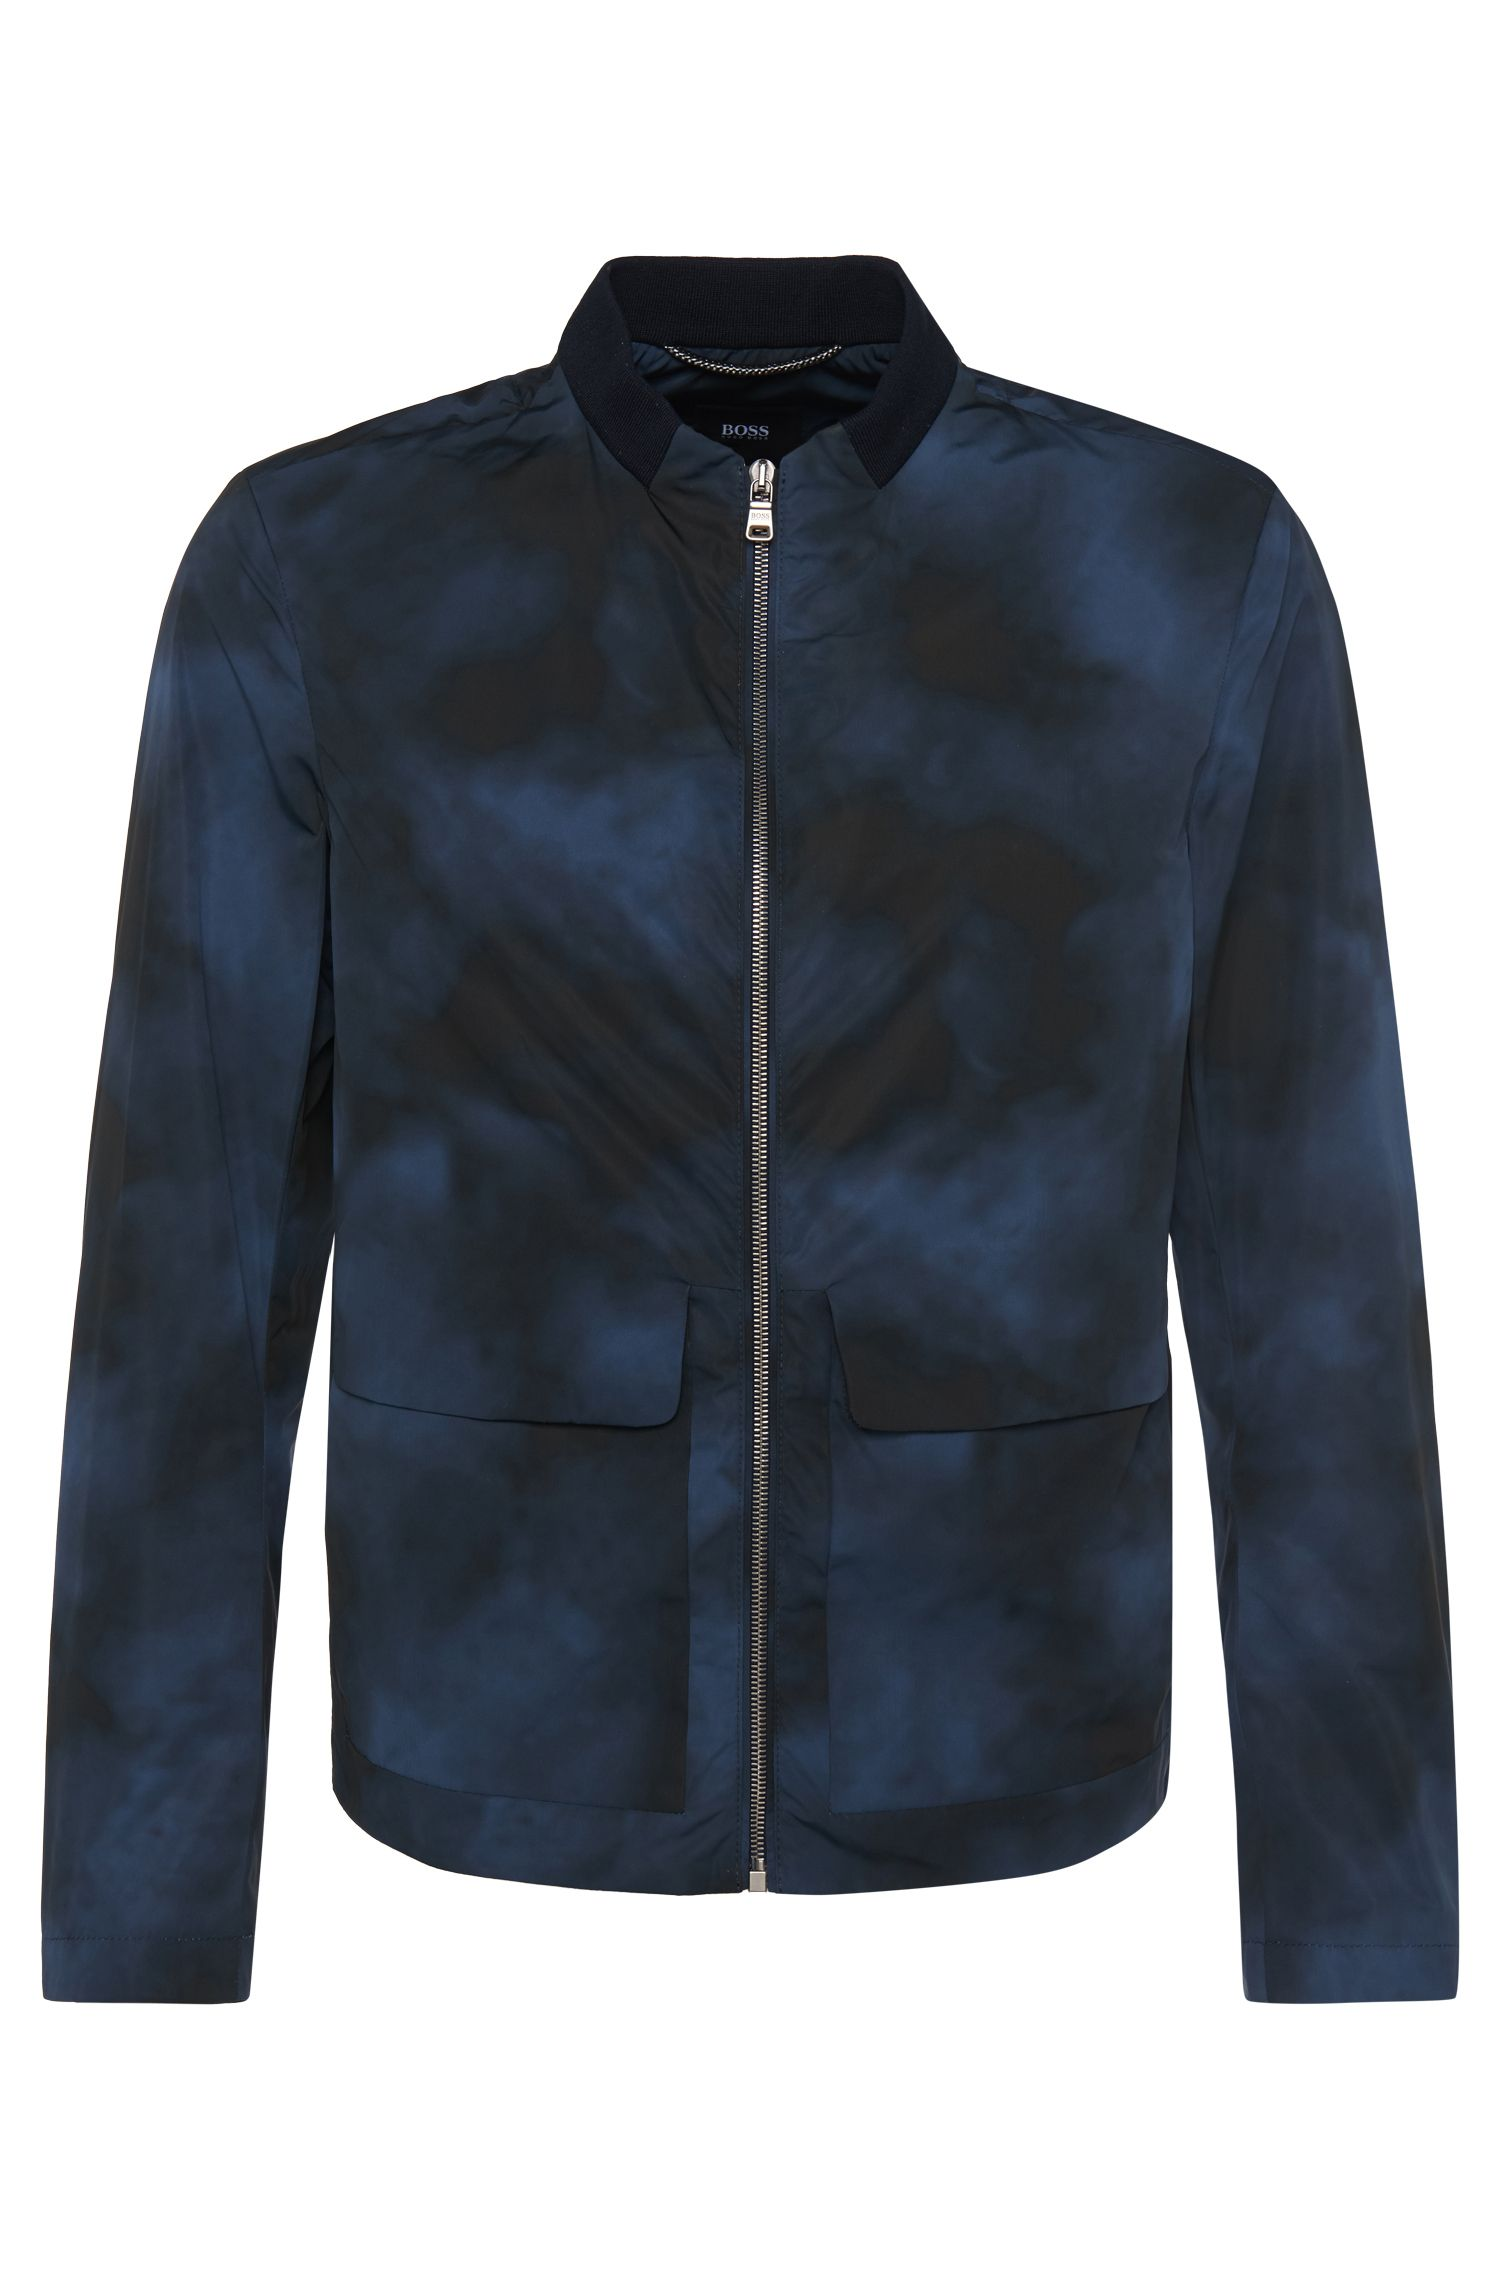 'T-Colent' | Batik Water-Repellent Jacket